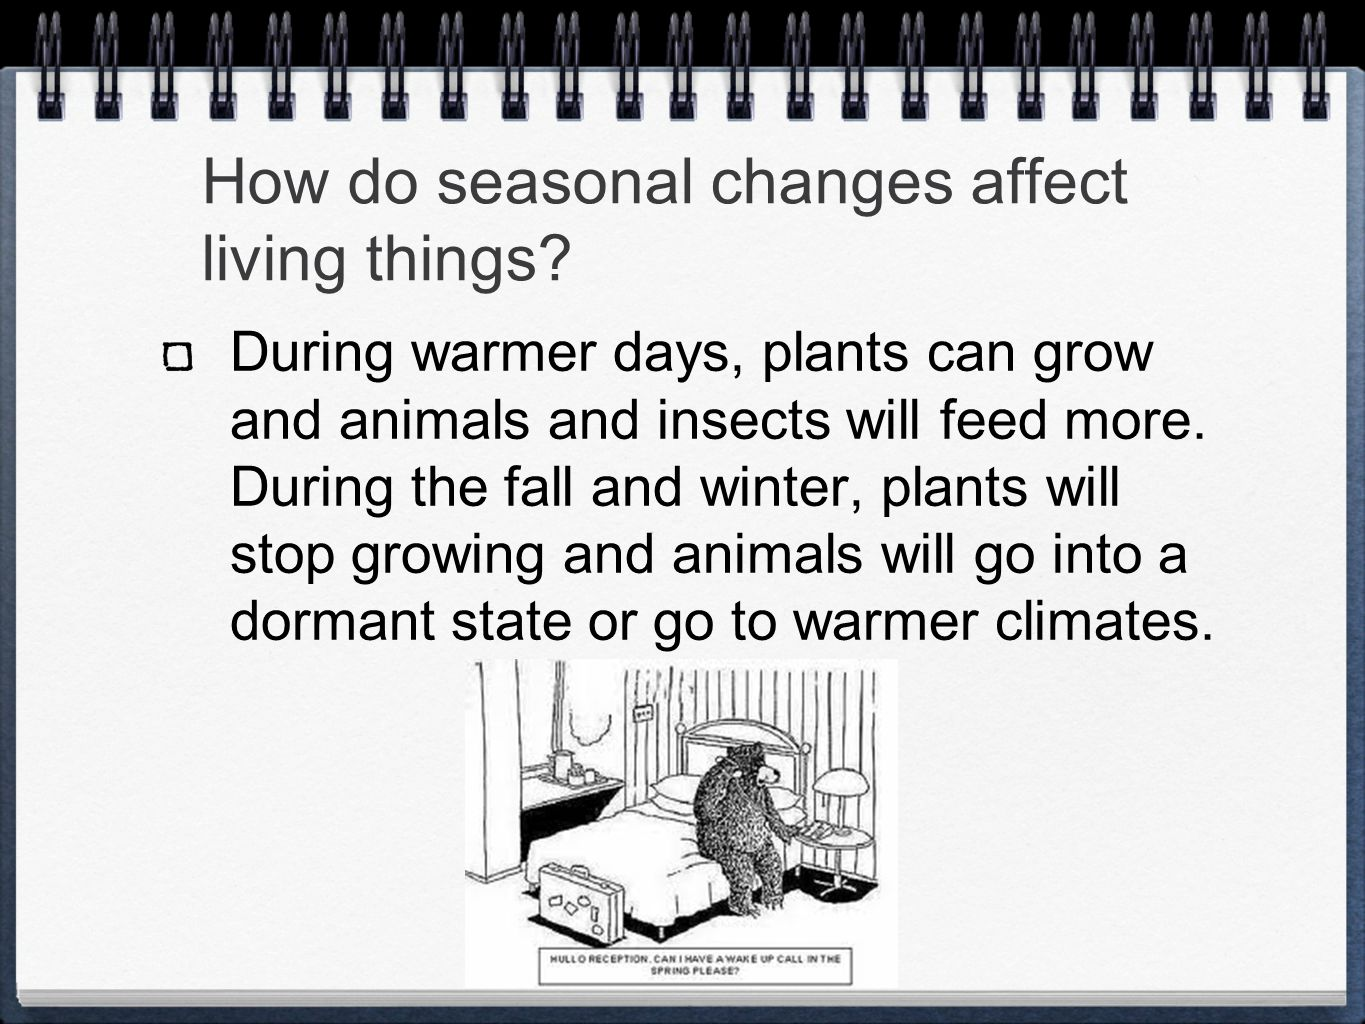 How do seasonal changes affect living things